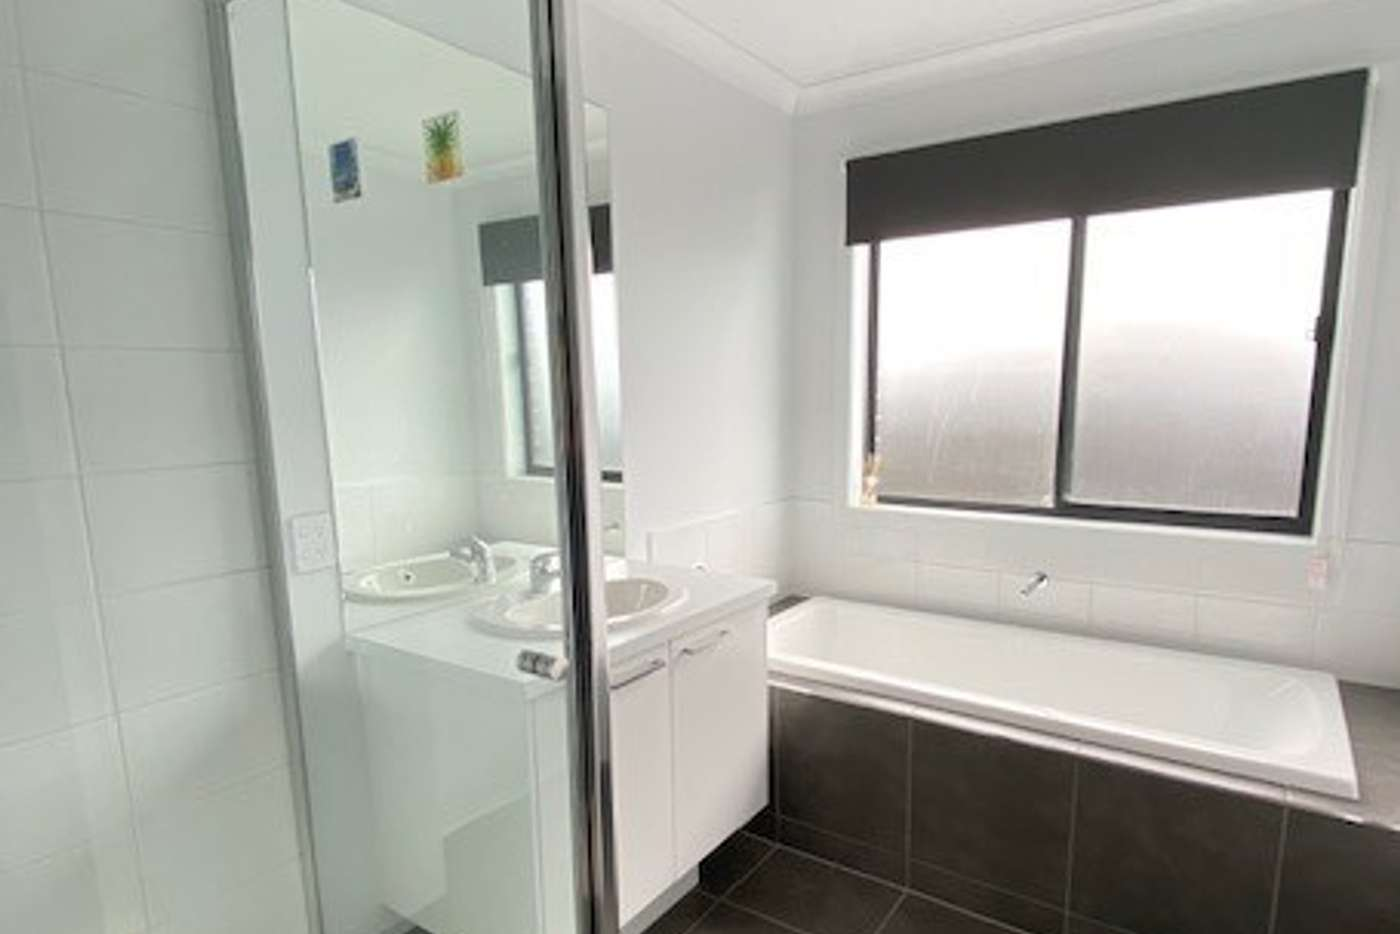 Sixth view of Homely house listing, 15 Billy Court, Colac VIC 3250